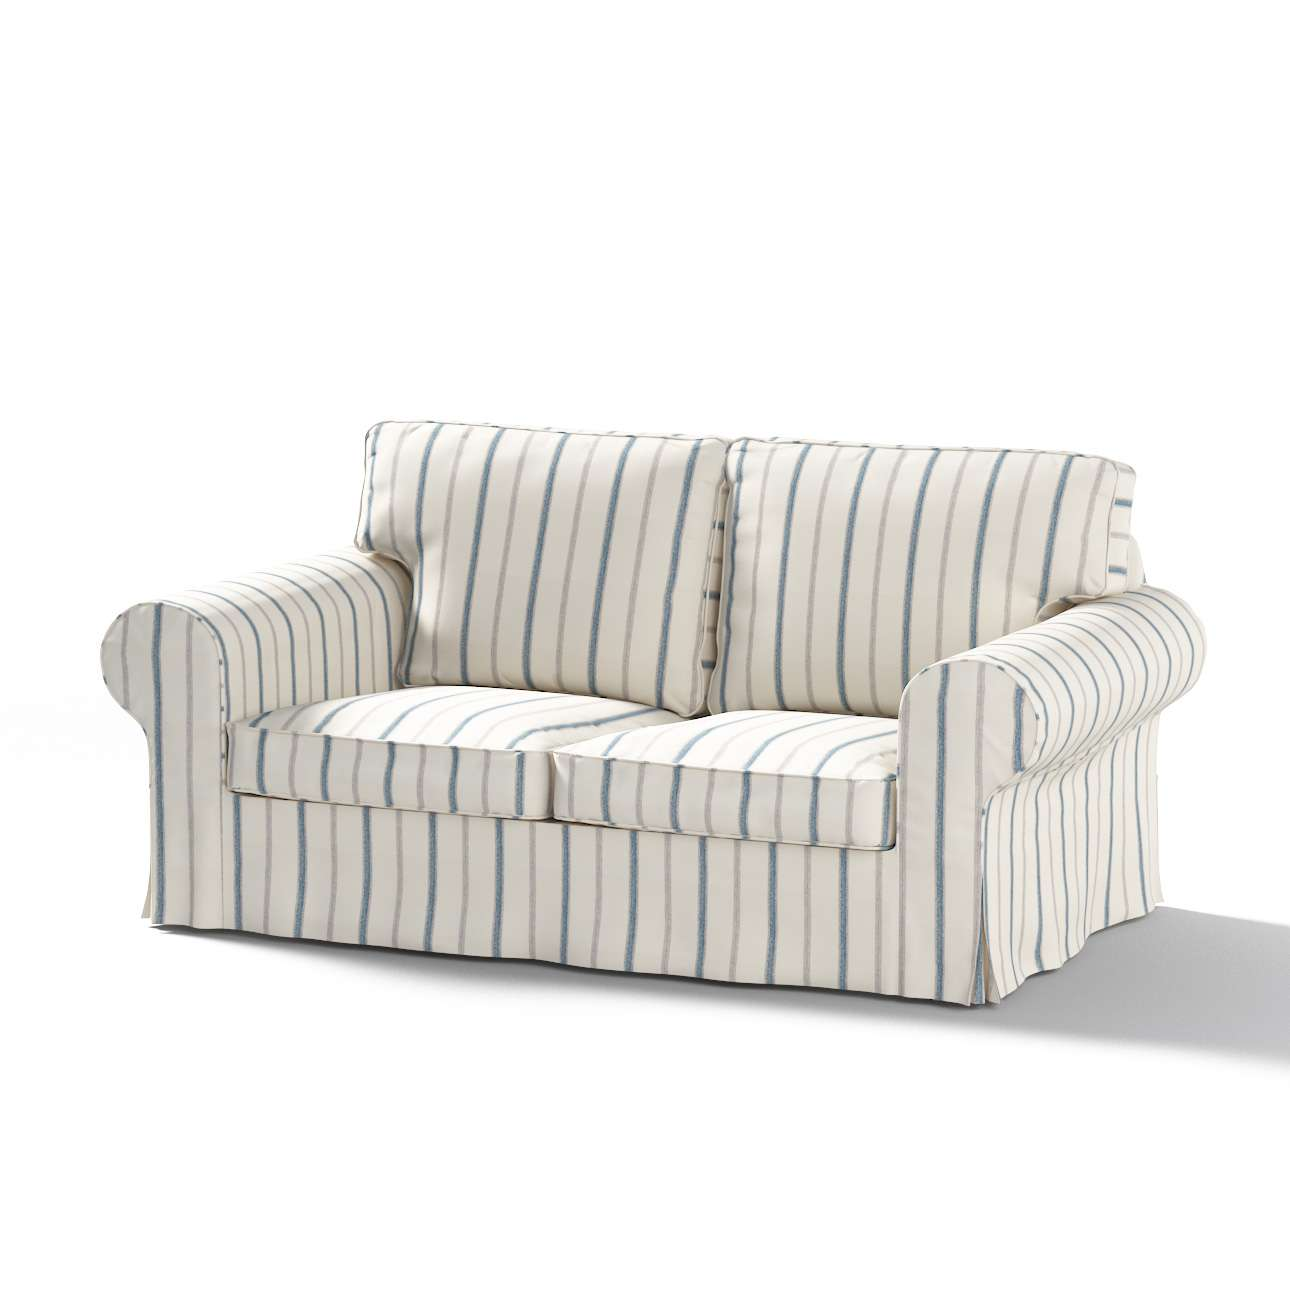 Picture of: Ektorp 2 Seater Sofa Cover Blue Stripes Ivory Background 129 66 Ektorp 2 Seat Sofa Cover Dekoria